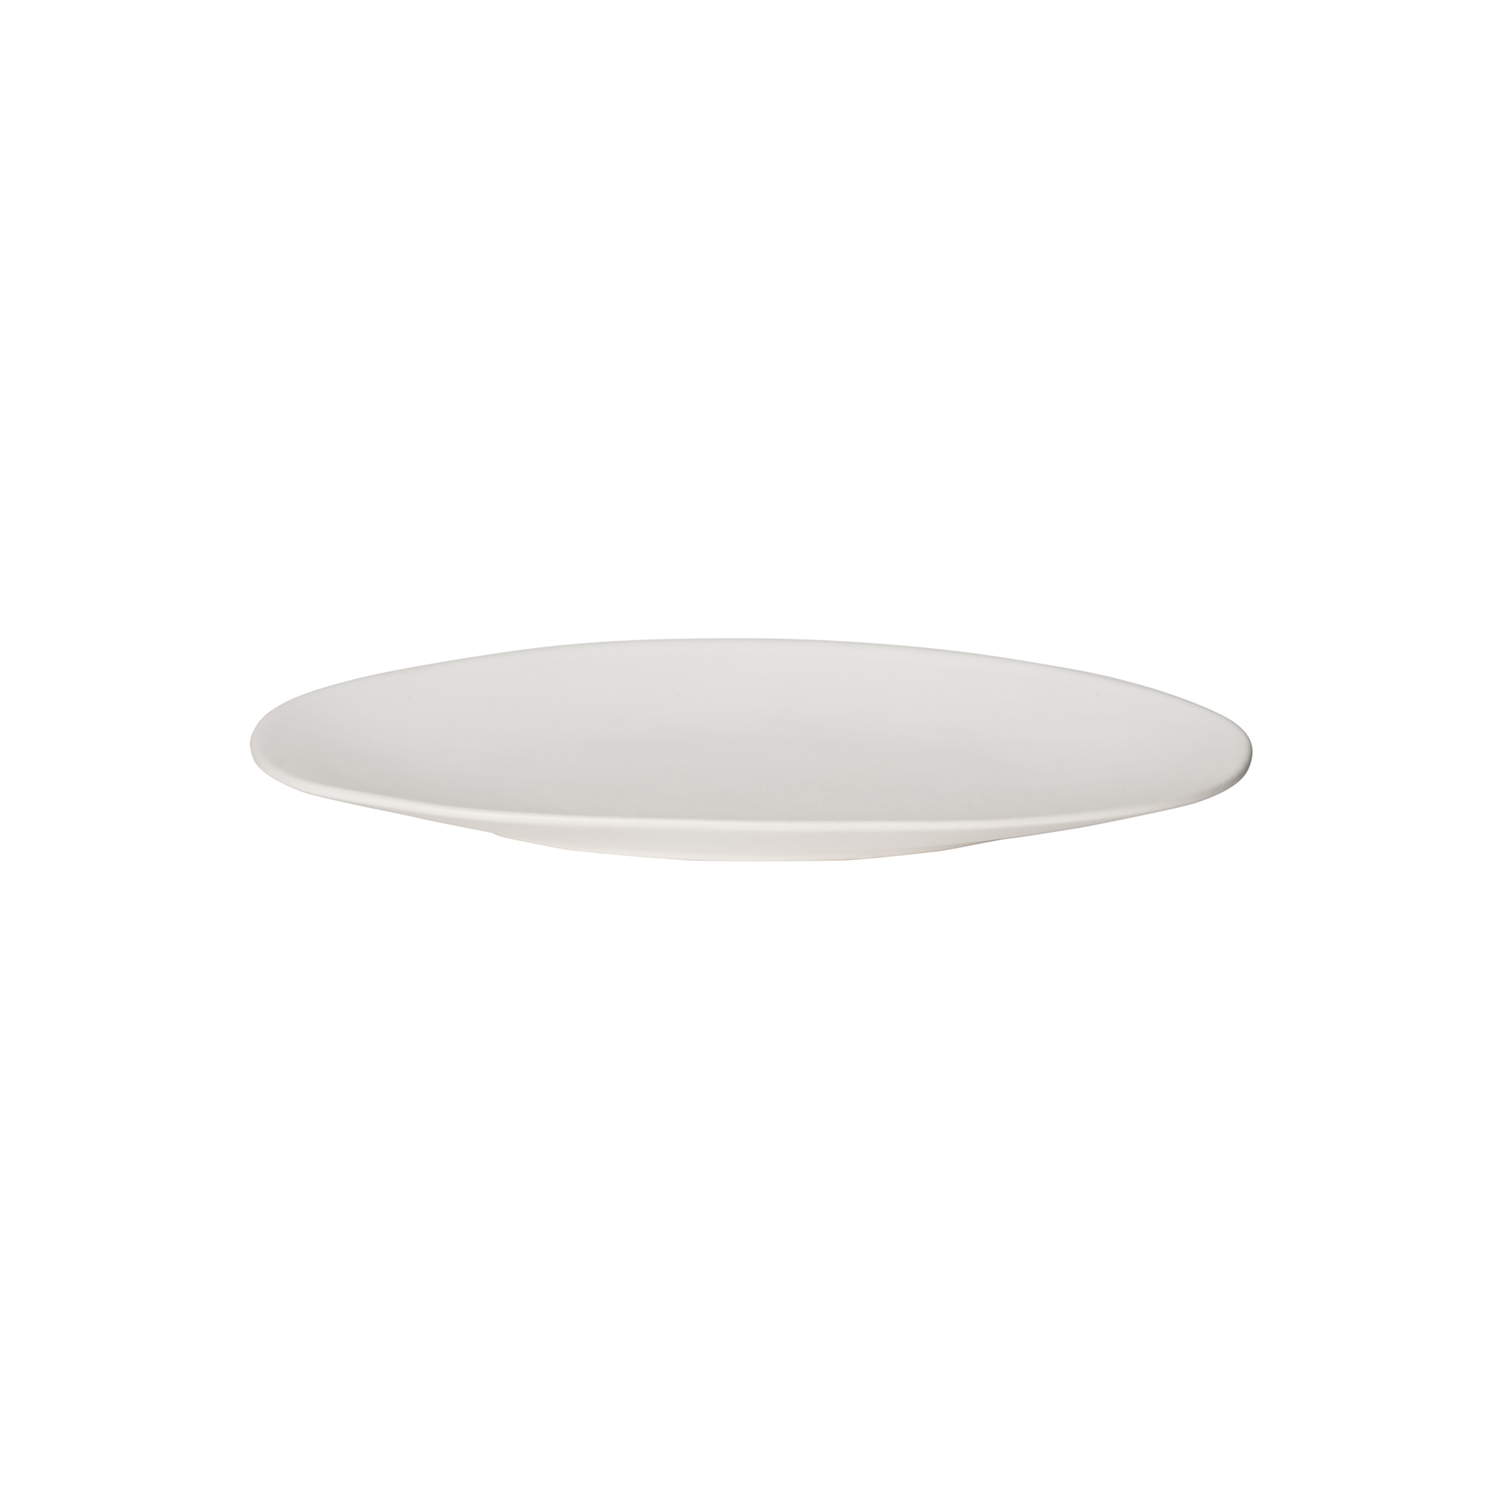 General Eclectic: Freya Small Platter - White image